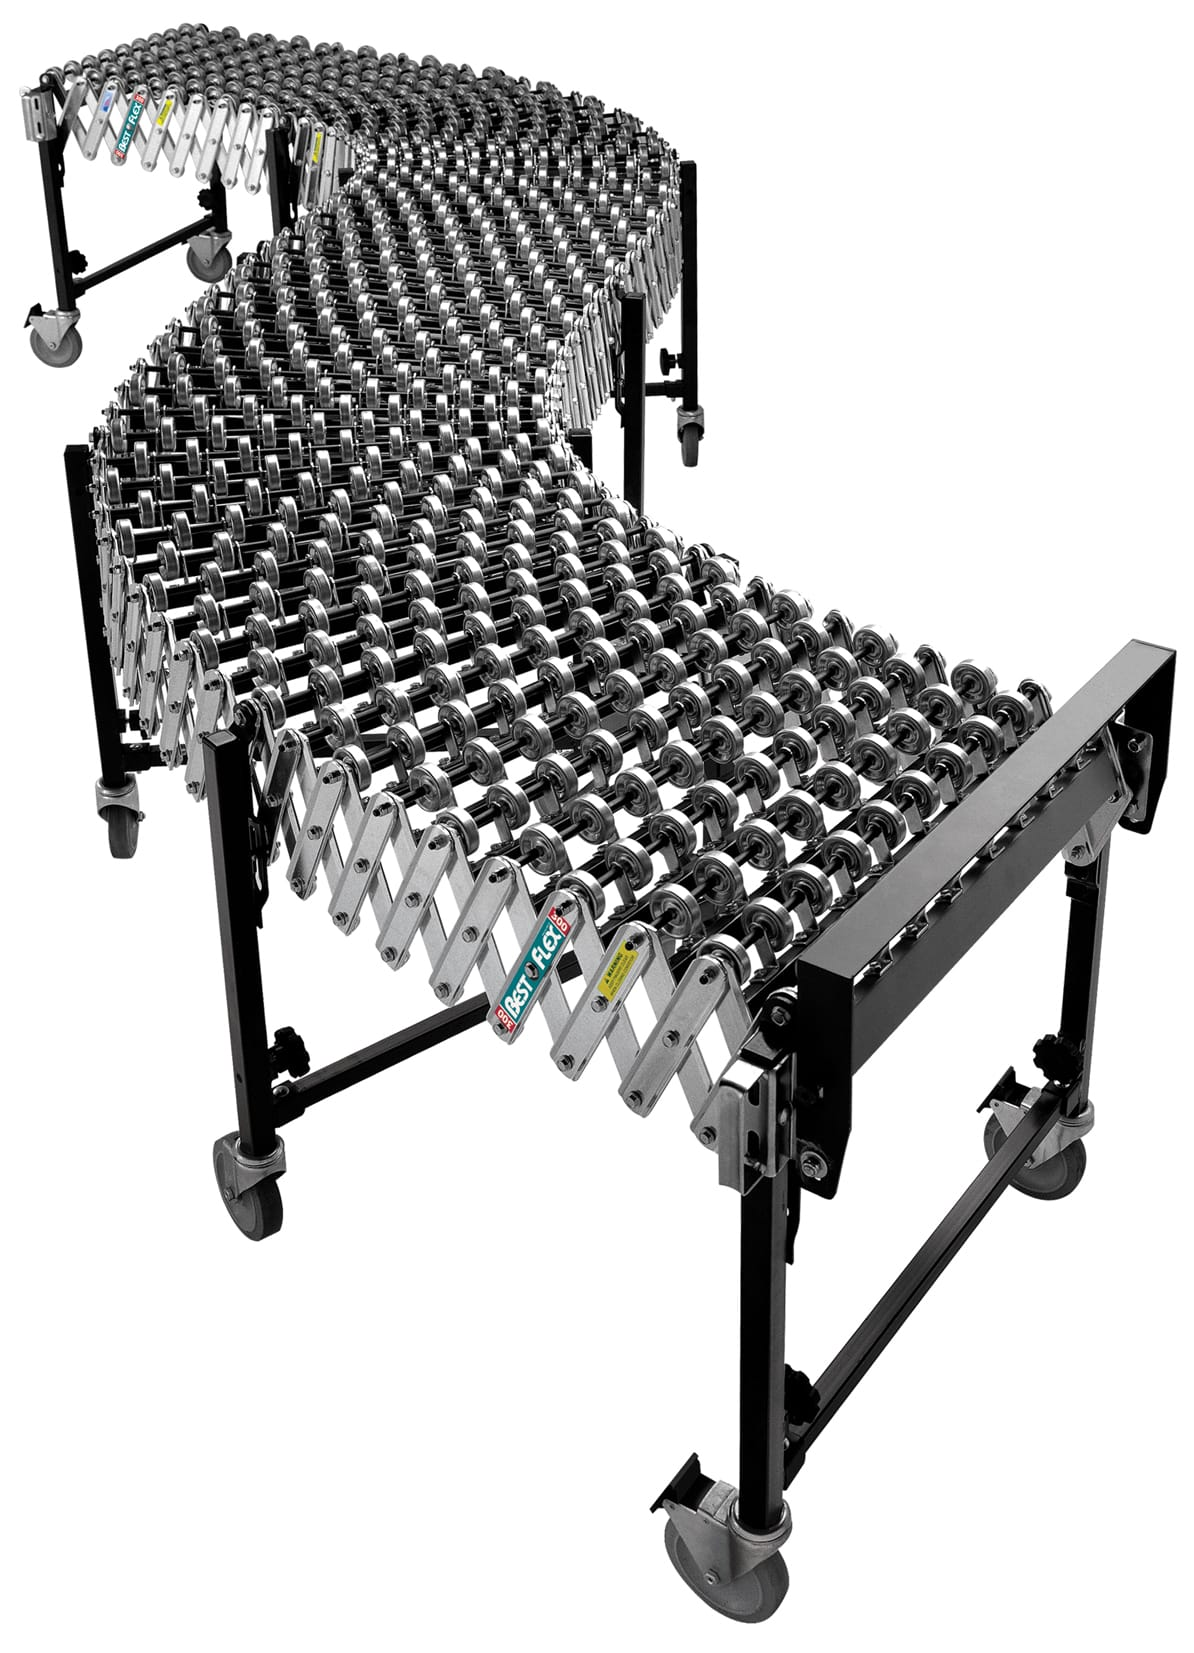 accordion roller conveyor